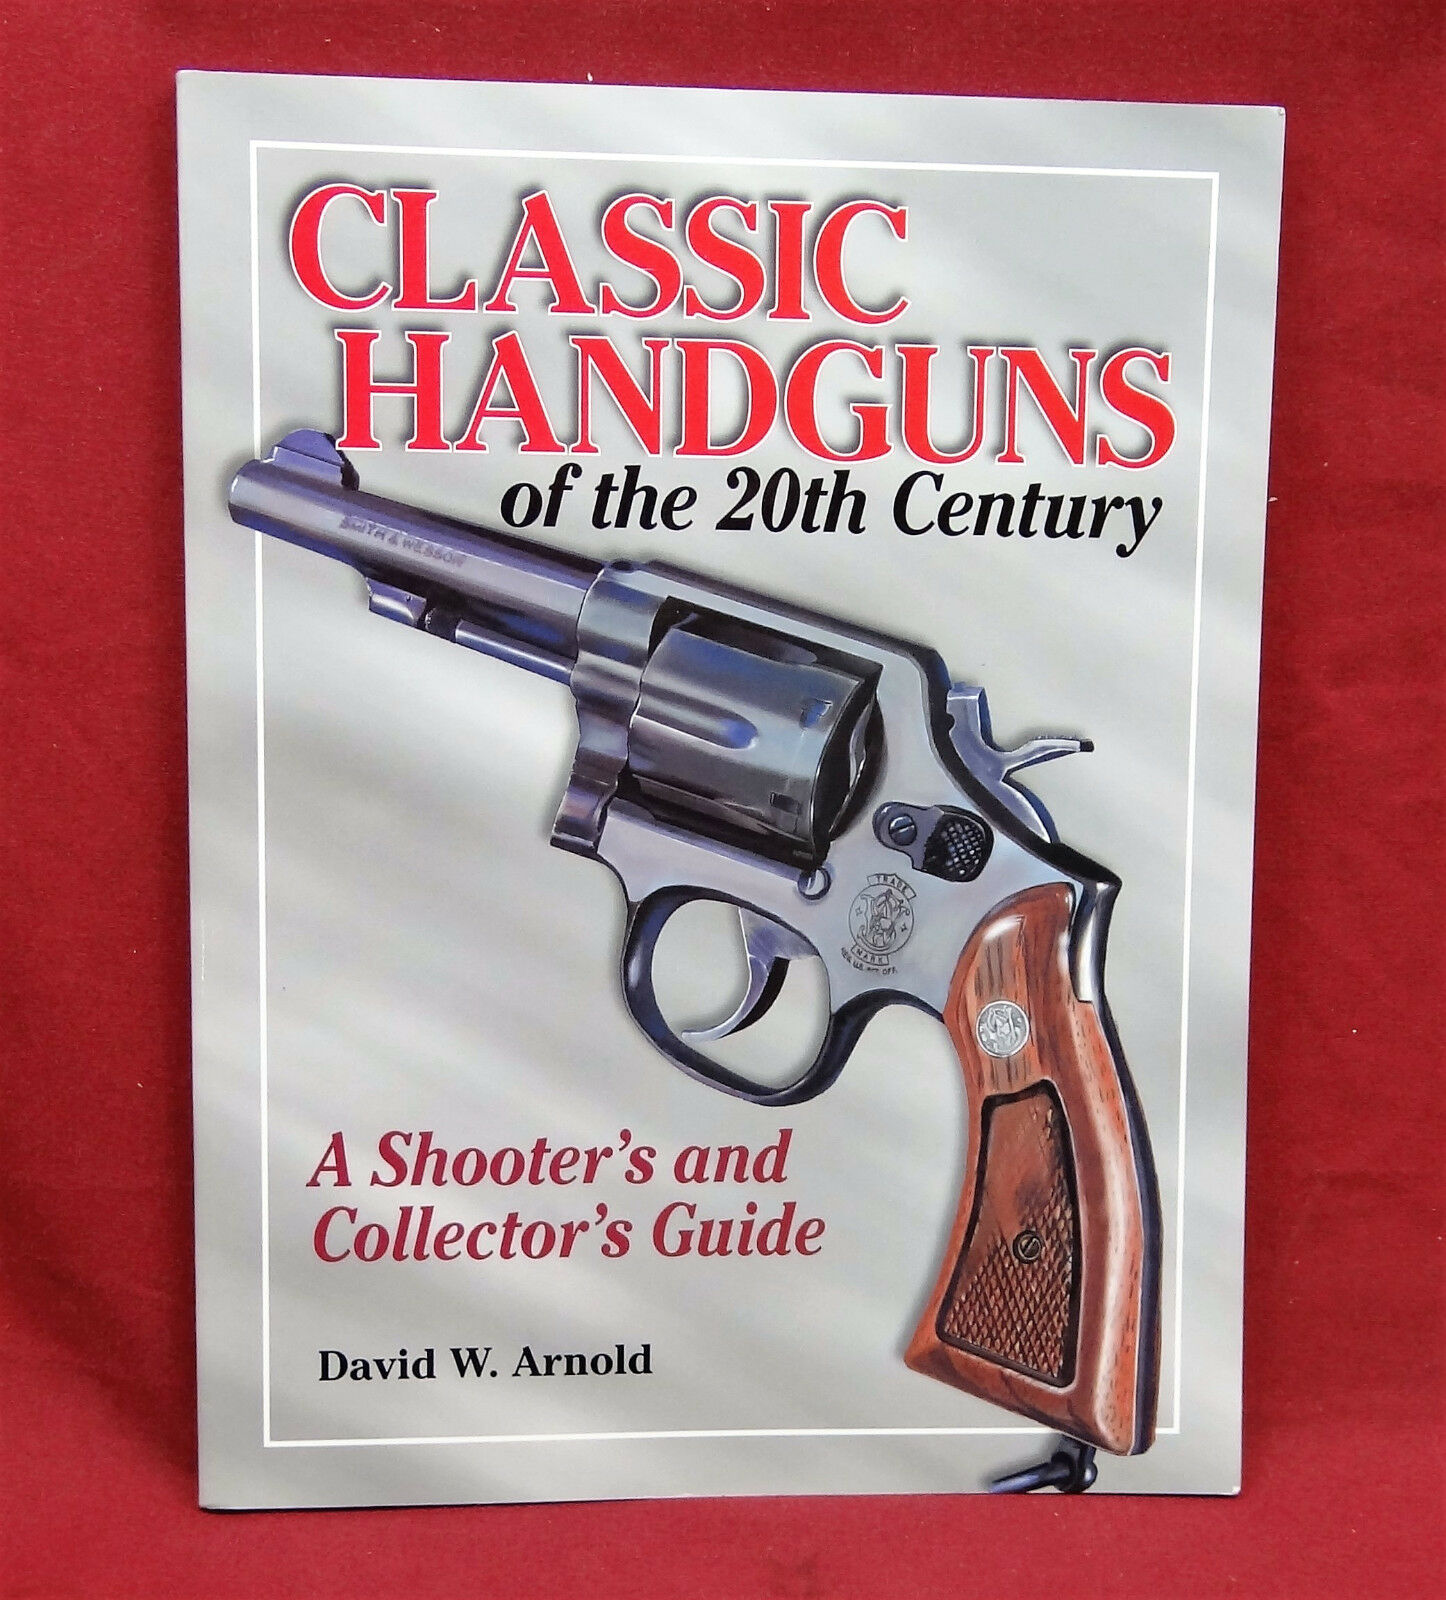 Classic Handguns of the 20th Century: A Shooter's and Collector's Guide